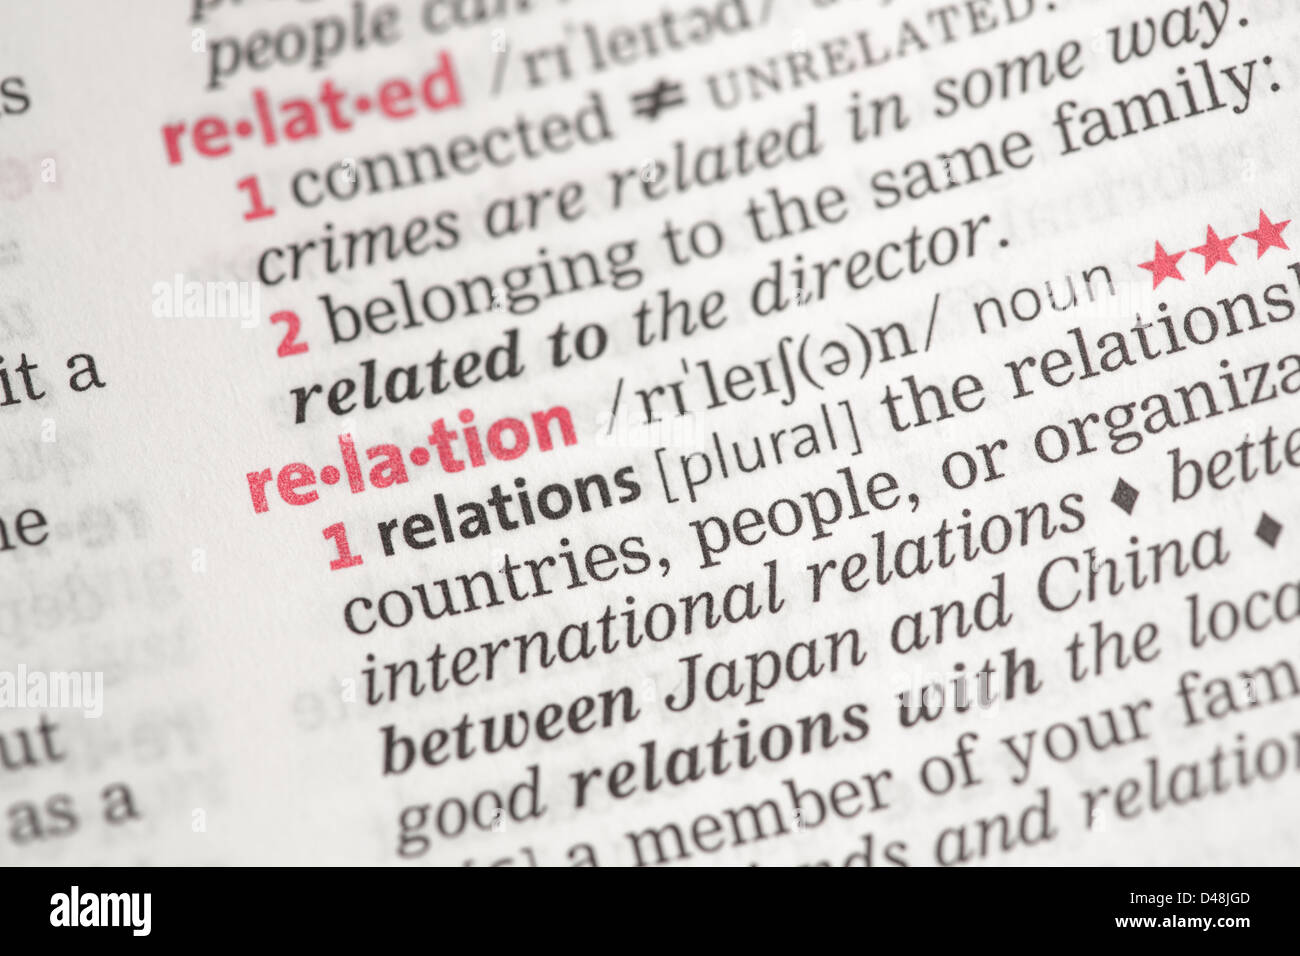 Relation definition - Stock Image